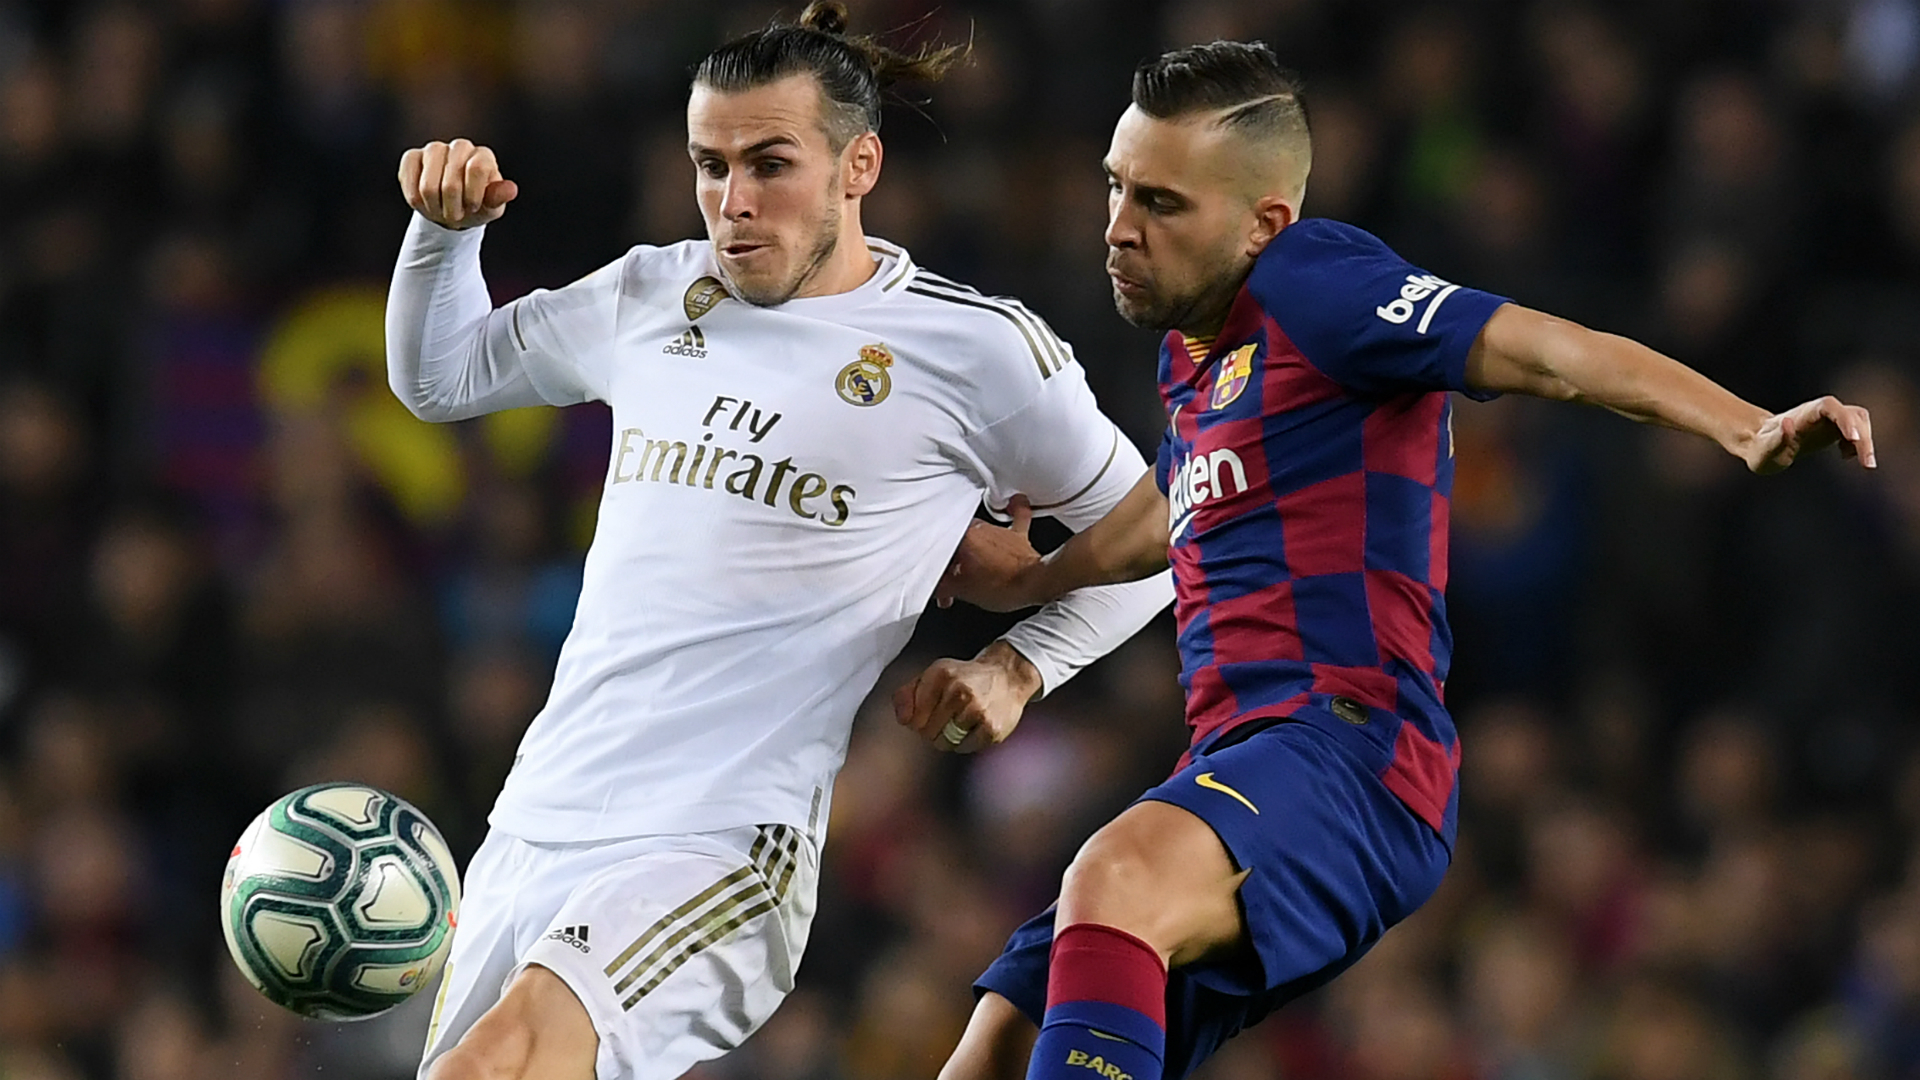 Barcelona 0-0 Real Madrid: Bale goal disallowed in tense Clasico